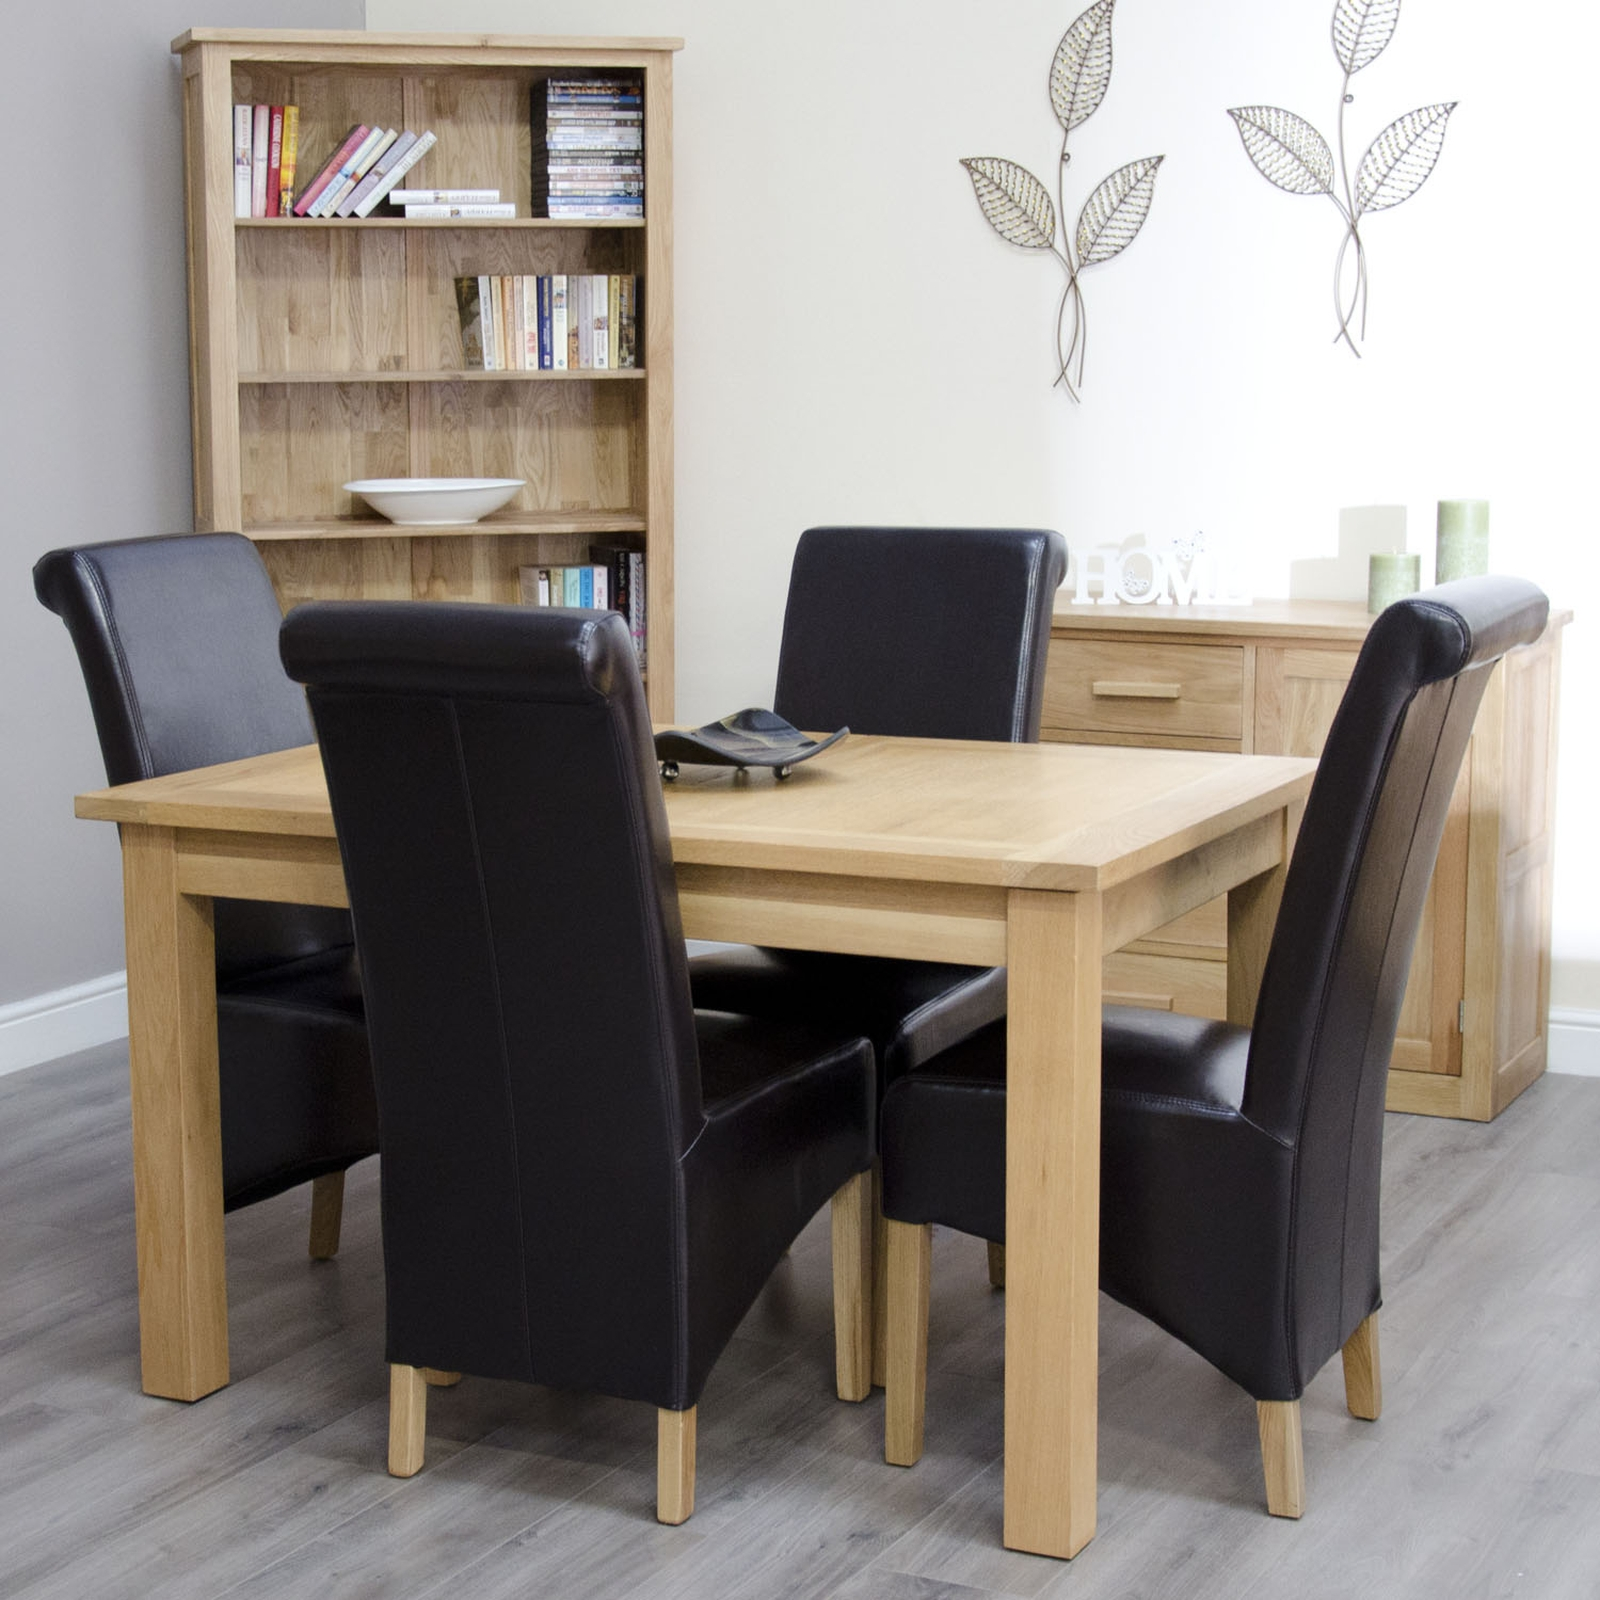 arden solid oak furniture extending dining table with four